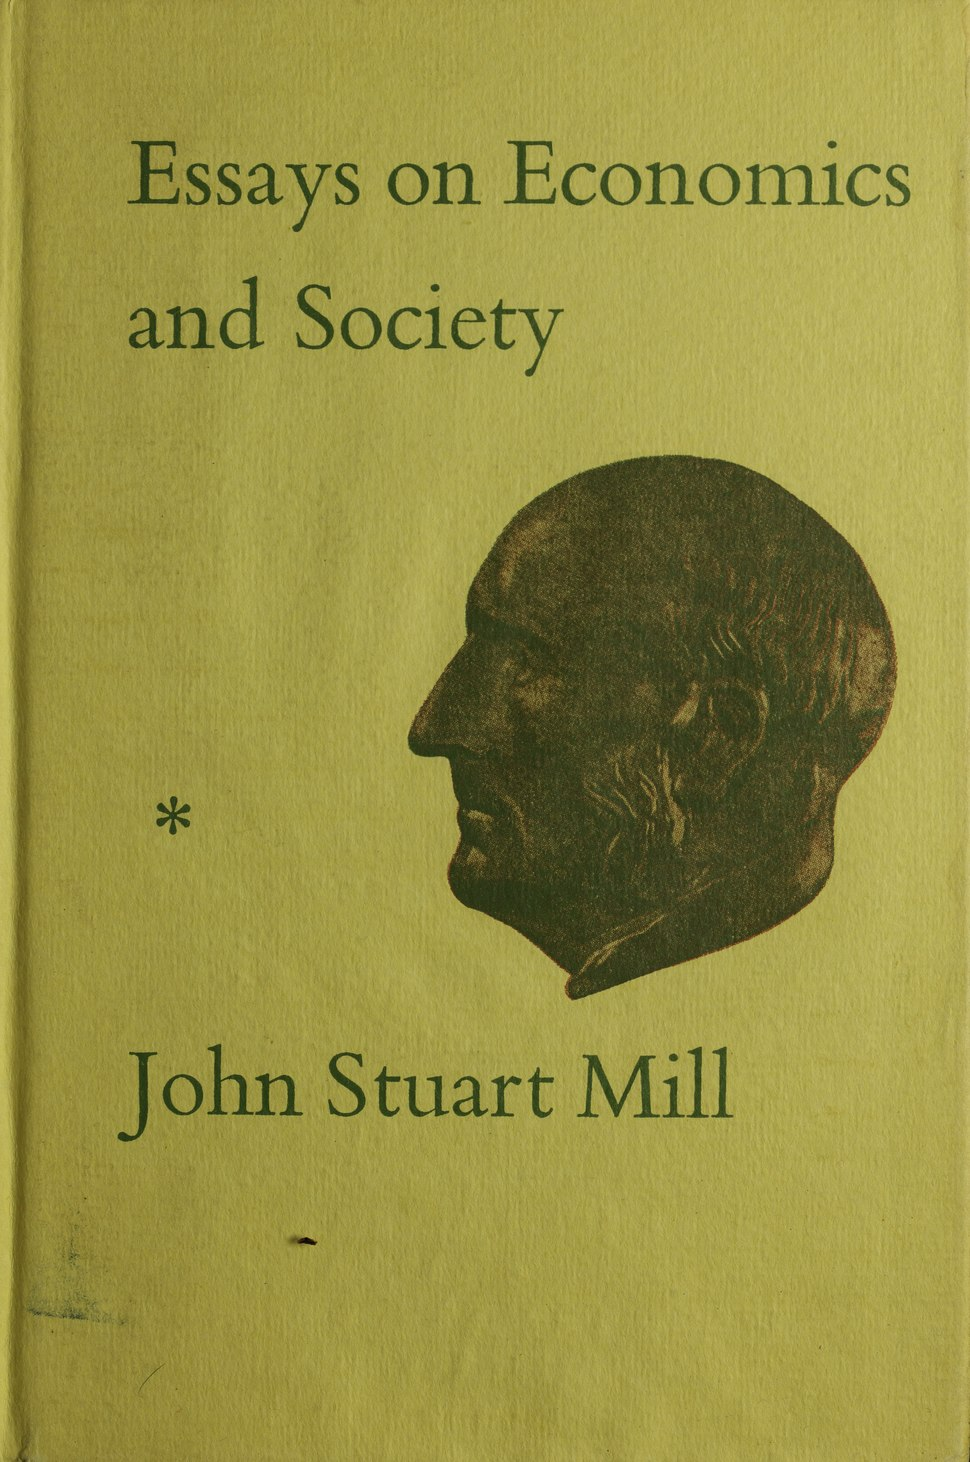 Mill - Essays on economics and society, 1967 - 5499347